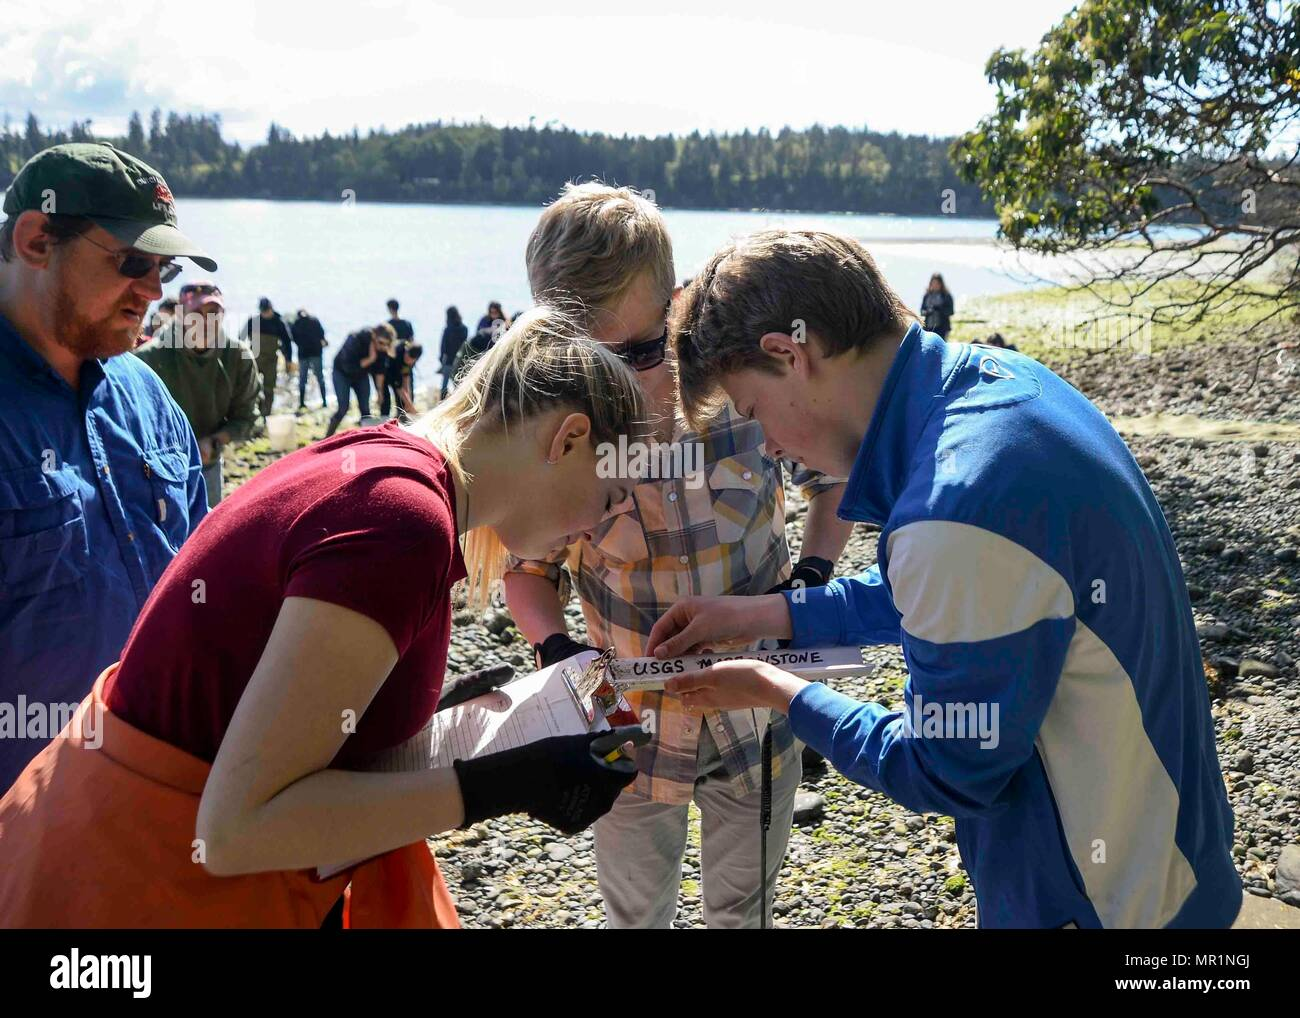 170428-N-VH385-035 INDIAN ISLAND, Wash., (April 28, 2017) – Students from Blue Heron Middle School measure a fish during a community outreach beach seining with the United States Geological Survey (USGS) at Naval Magazine Indian Island. This is the third year the USGS has teamed up with Blue Heron Middle School and Naval Magazine Indian Island to conduct beach seinings in preparation for the Kilsut Spit waterflow to be opened between Marrowstone and Indian Island. (U.S. Navy photo by Mass Communication Specialist 3rd Class Wyatt L. Anthony) - Stock Image